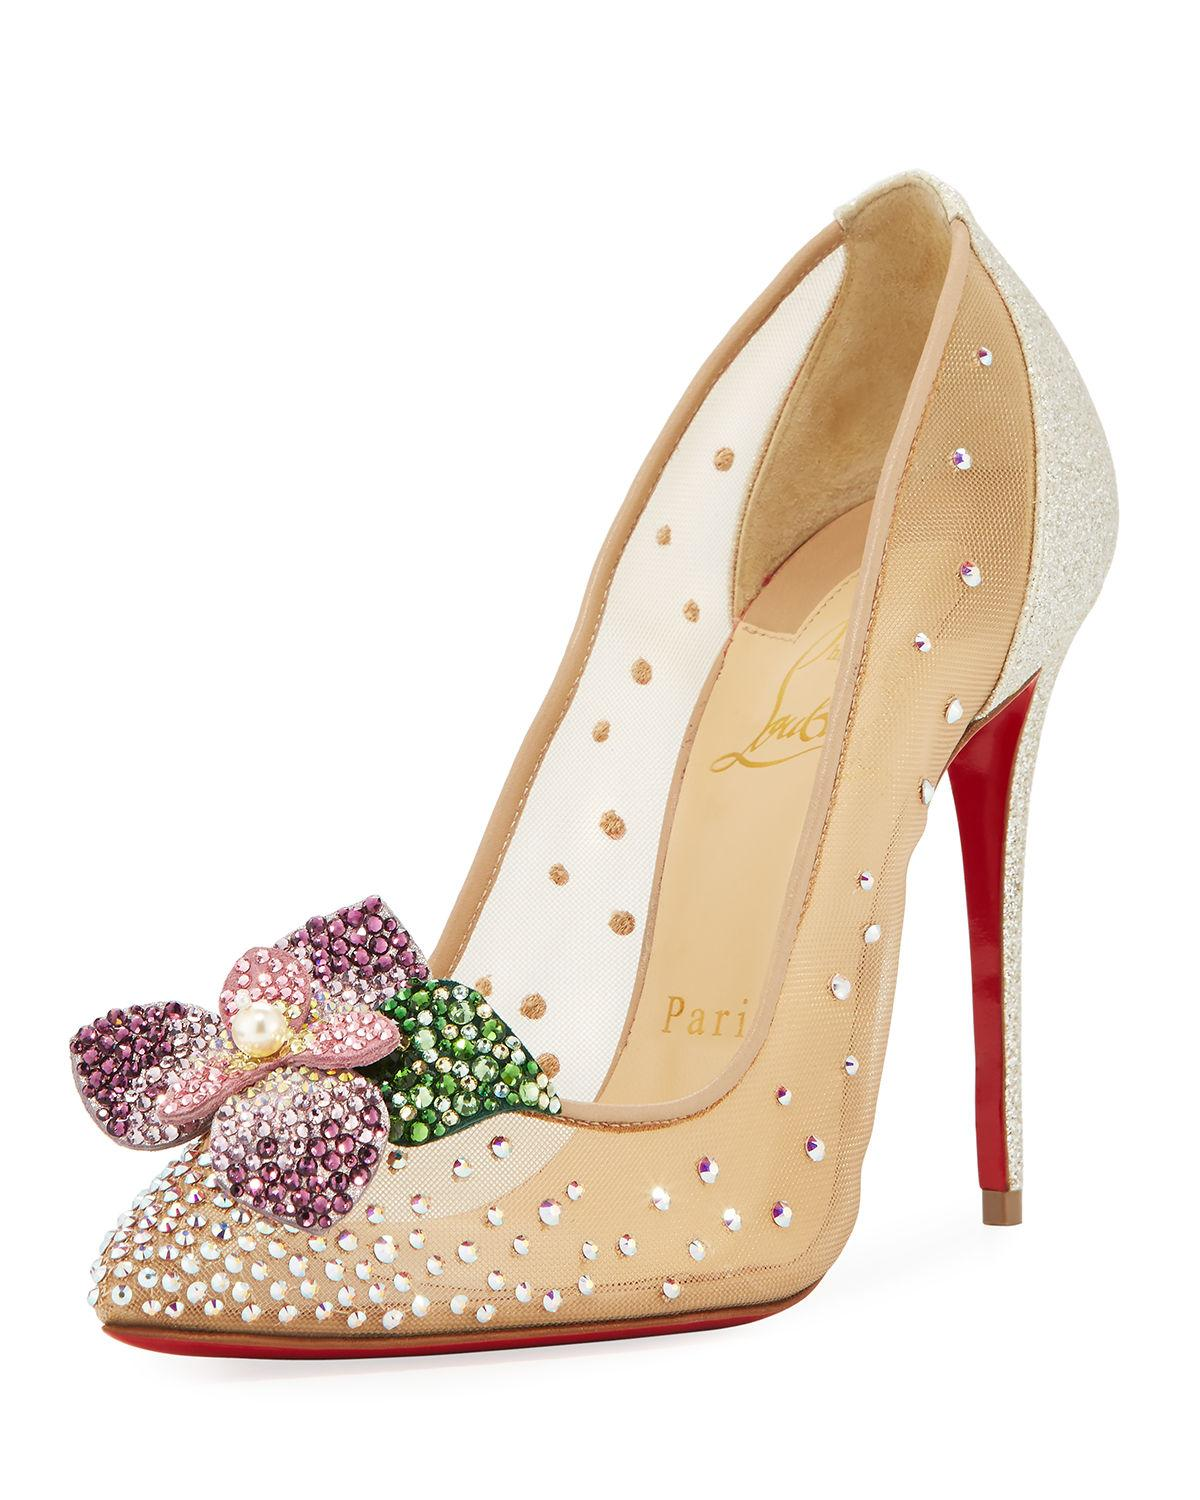 9d0fc27fdc3 Lyst - Christian Louboutin Feerica Crystal-embellished Red .